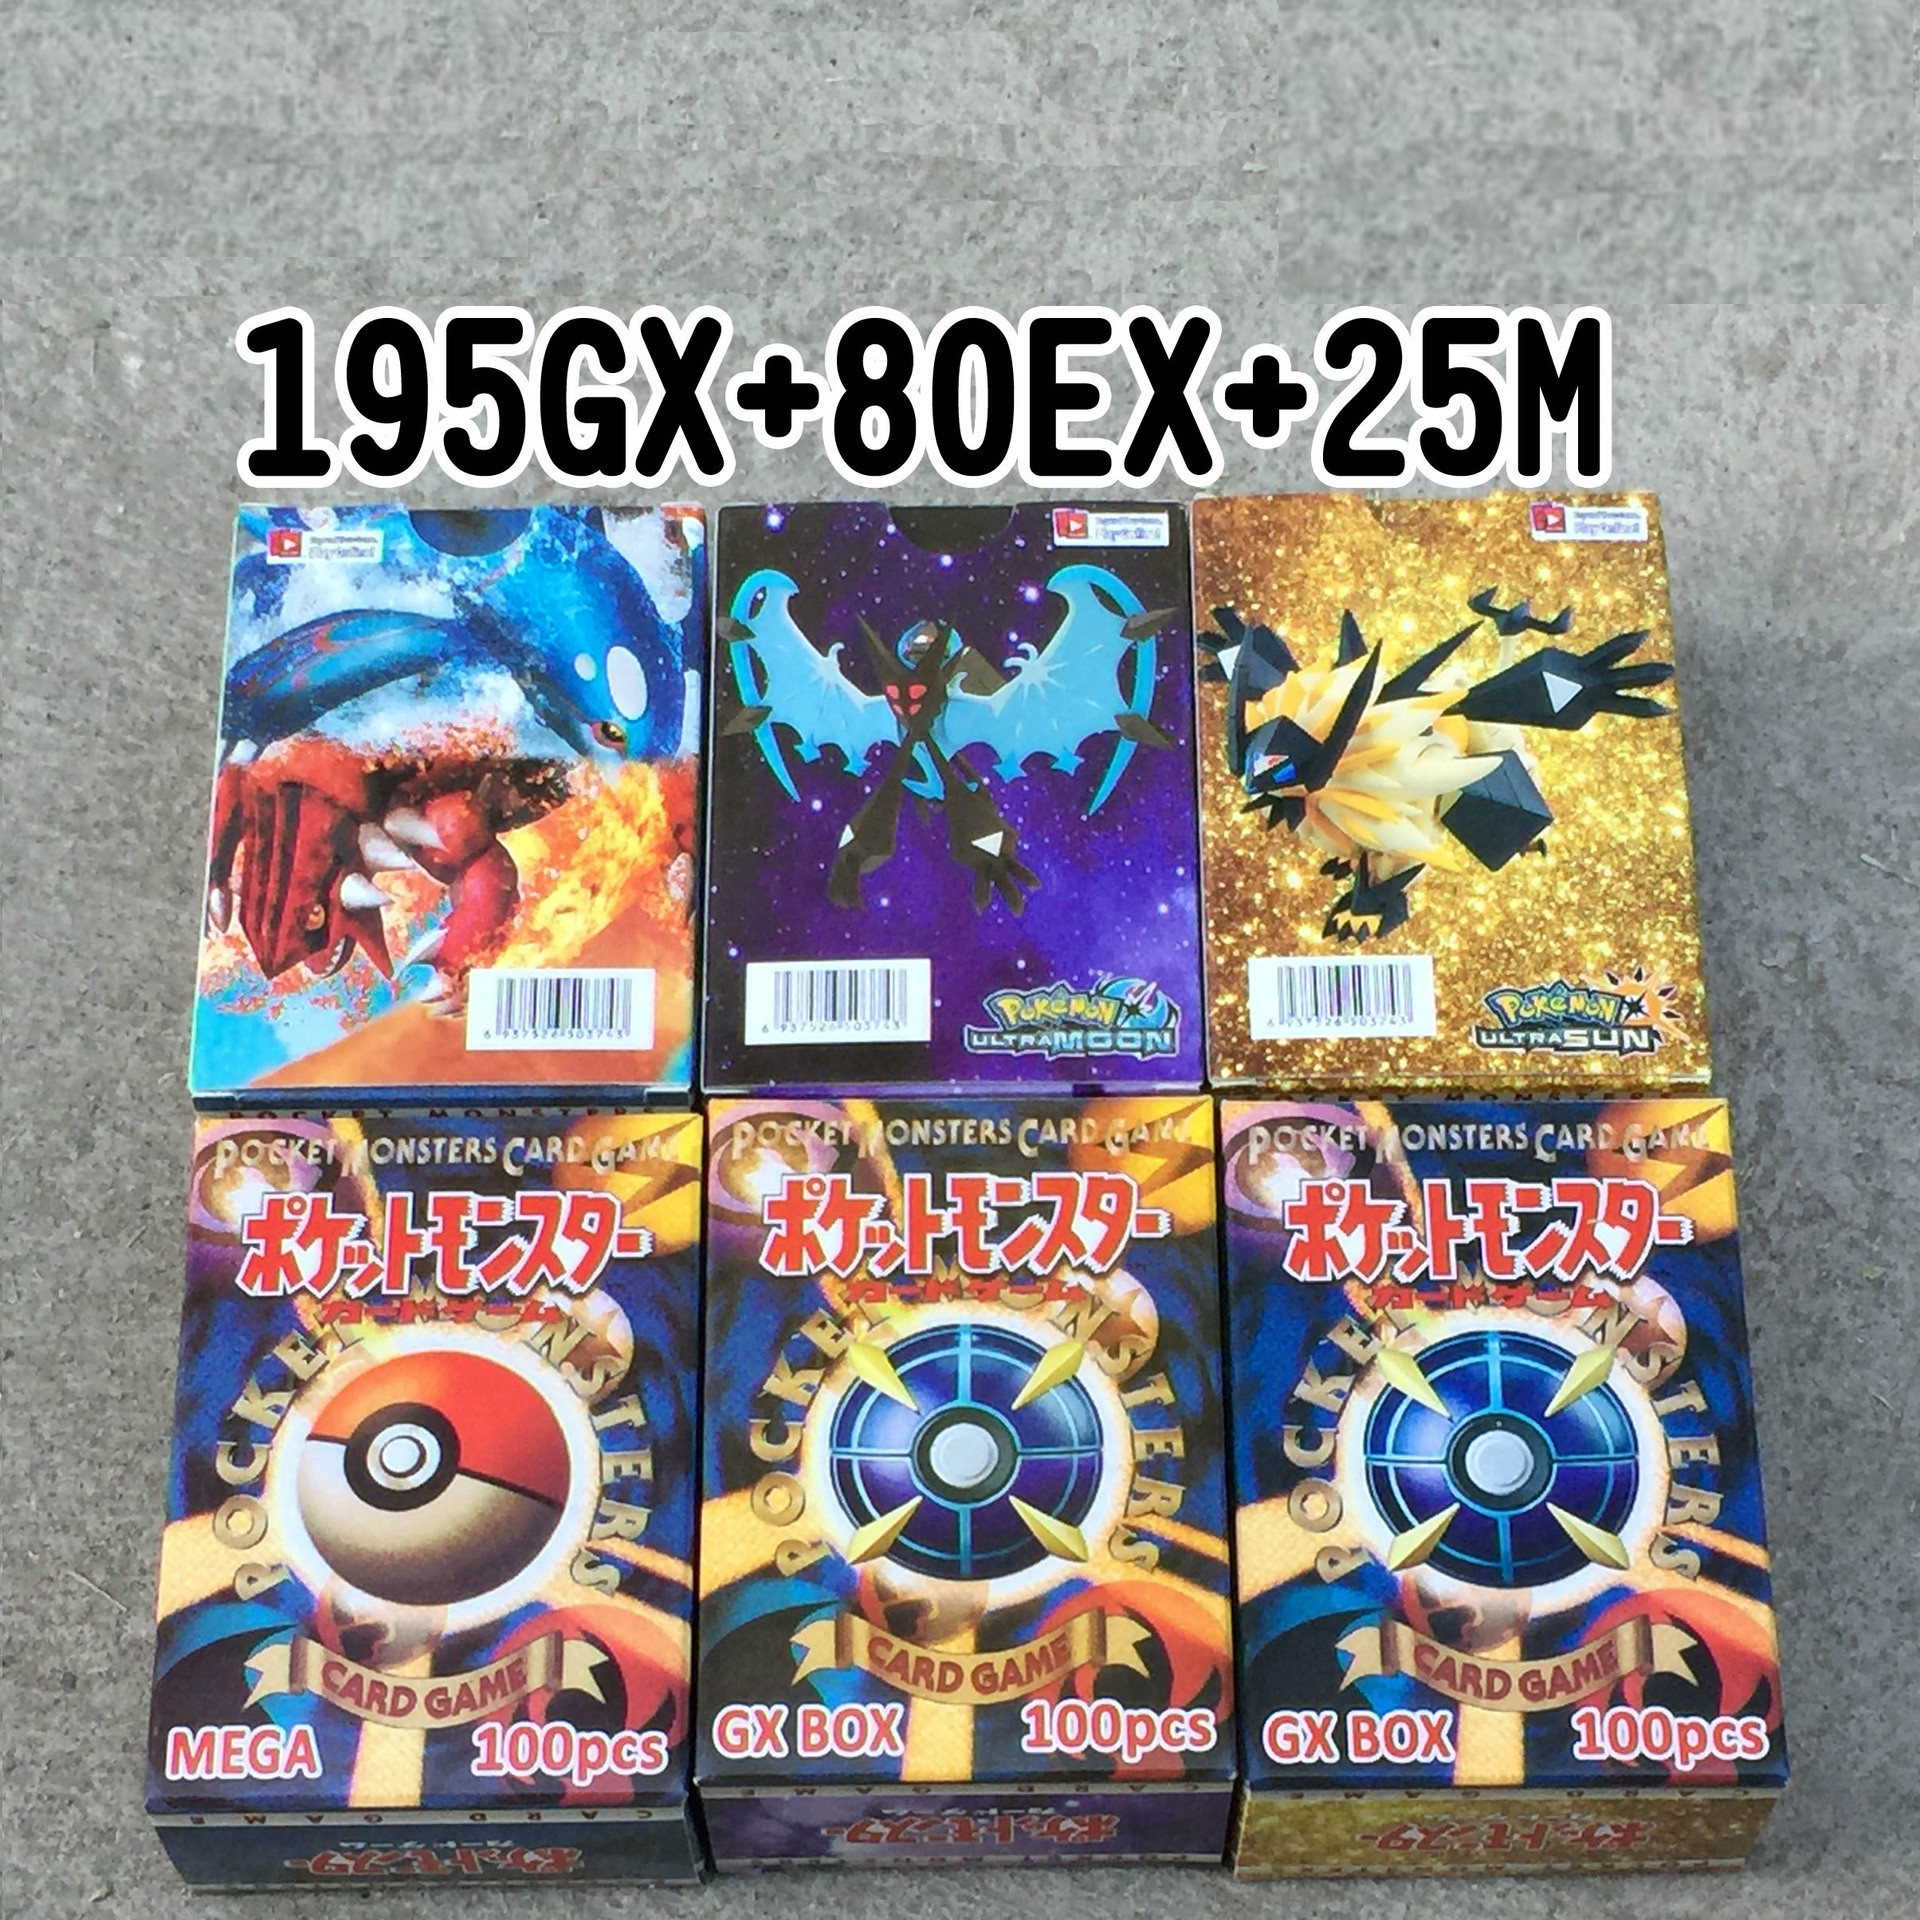 TAKARA TOMY Pokemon 300pcs/set Not Repeat GX EX Battle Toys Hobbies Hobby Collectibles Game Collection Anime Cards For Children